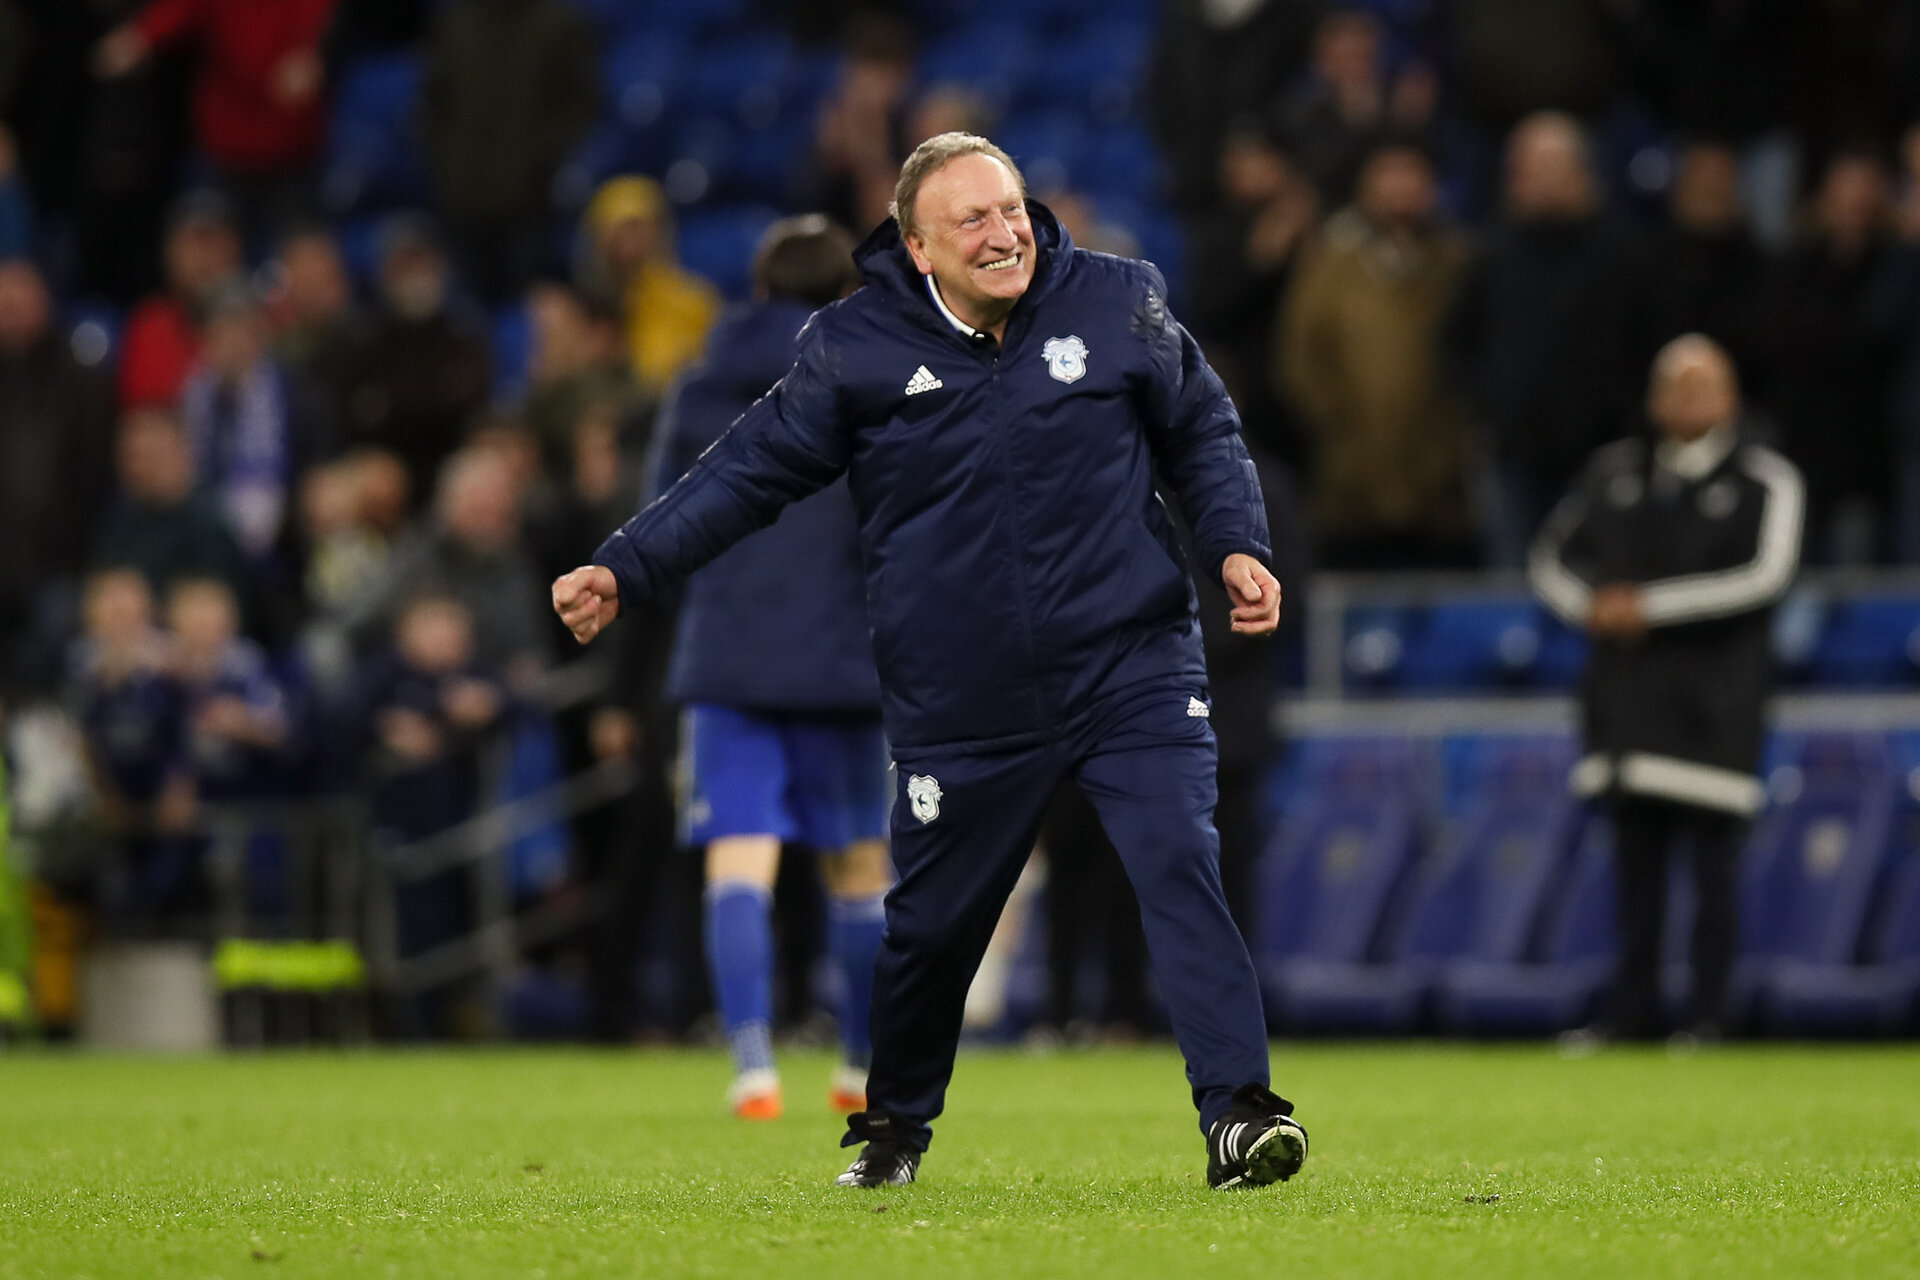 CARDIFF, WALES - NOVEMBER 30: Cardiff City manager \ head coach Neil Warnock celebrates at full time after the Premier League match between Cardiff City and Wolverhampton Wanderers at Cardiff City Stadium on November 30, 2018 in Cardiff, United Kingdom. (Photo by Molly Darlington - AMA/Getty Images)